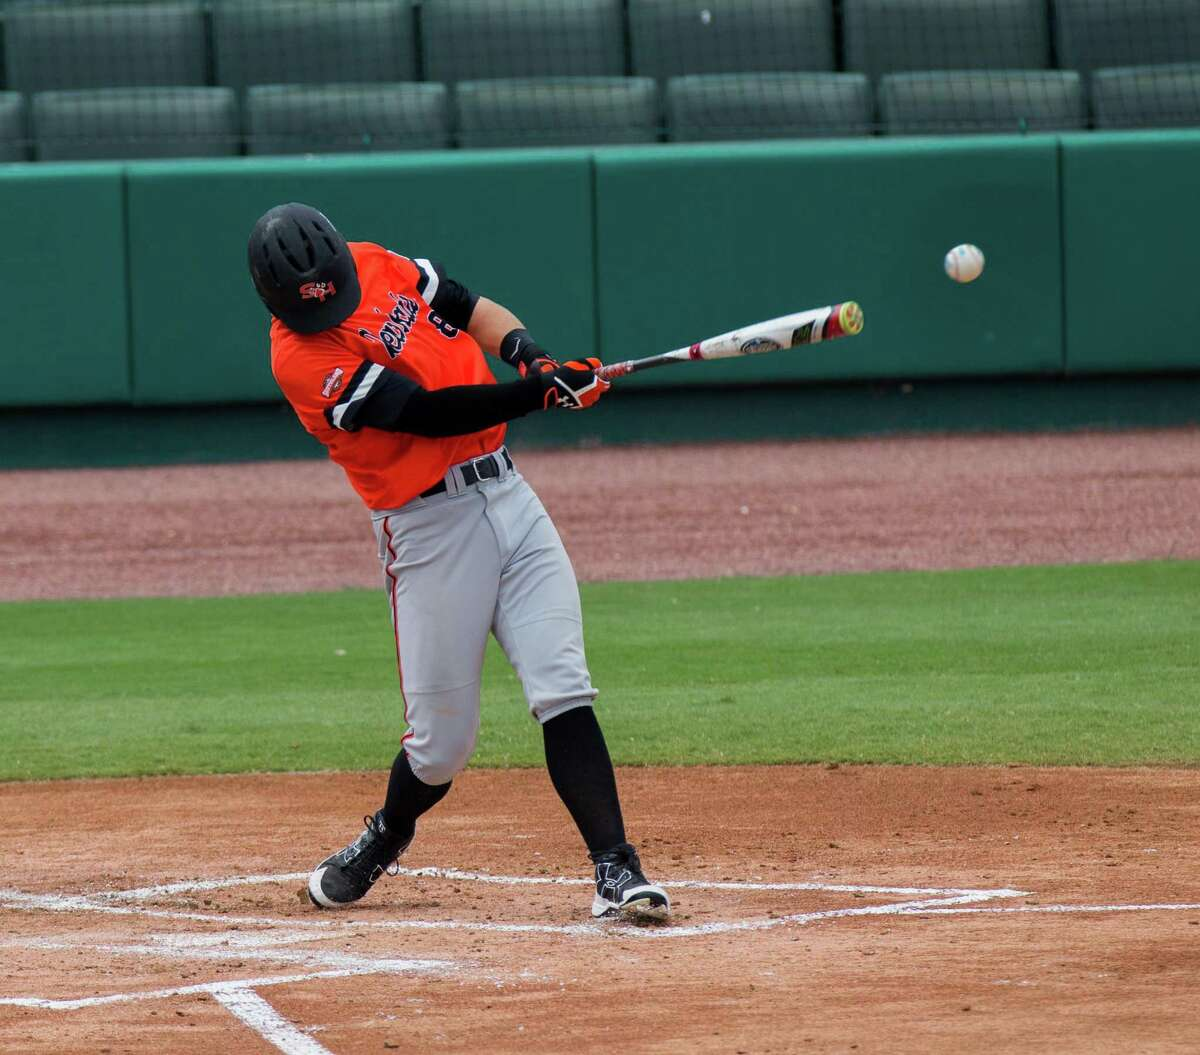 Sam Houston St. outfielder Hunter Hearn (8) hits for a single in the second inning of a baseball game during the Southland Conference Tournament between University of New Orleans vs Sam Houston State University at Constellation Field, Friday, May 26, 2017, in Sugarland. (Juan DeLeon/for the Houston Chronicle )